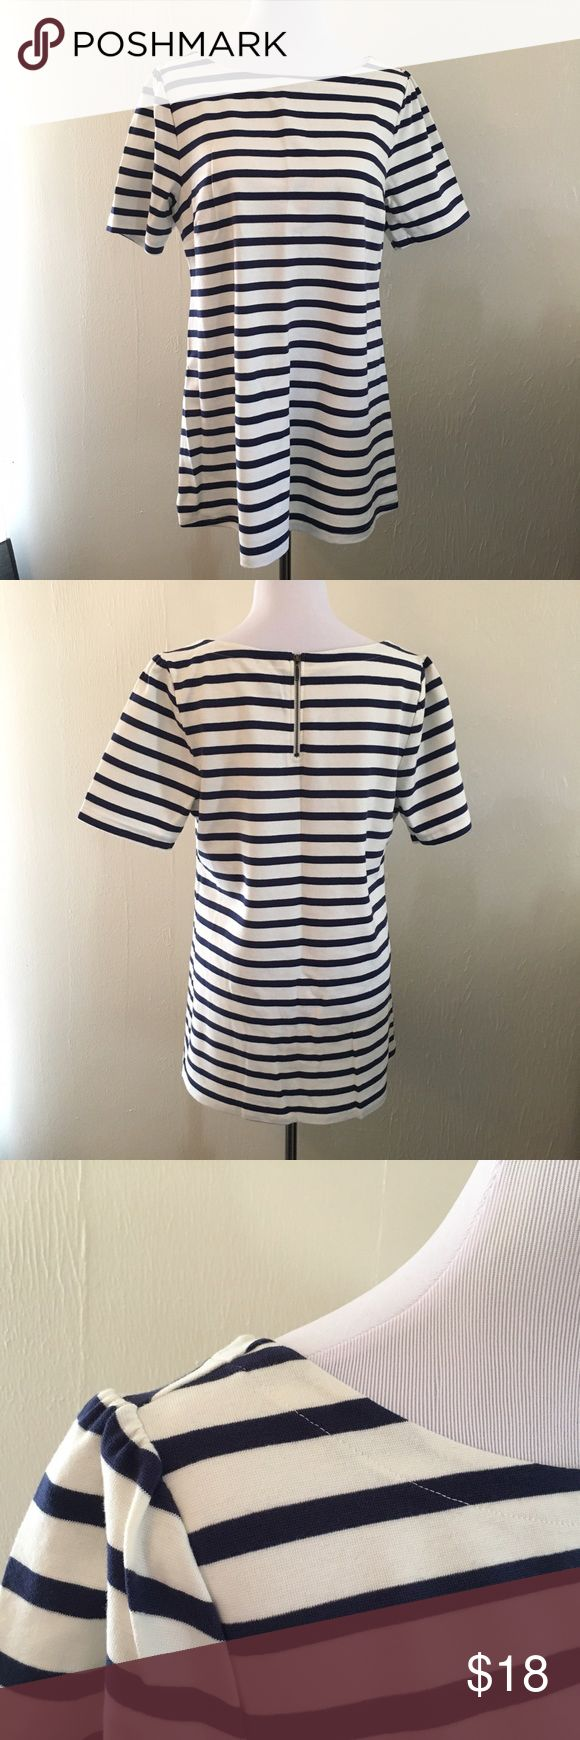 NWOT Old Navy Maternity Short Sleeve Stripe Tunic BRAND NEW. Perfect condition, never worn. Old Navy Maternity Navy Striped Tunic in a substantial Cotton with just a tiny bit of stretch. Size Large. Original Retail: $29.99. Ivory and Navy stripes, with slightly ruched sleeve tops, and a cute back zipper. Side darts at the bust. Old Navy Tops Tunics